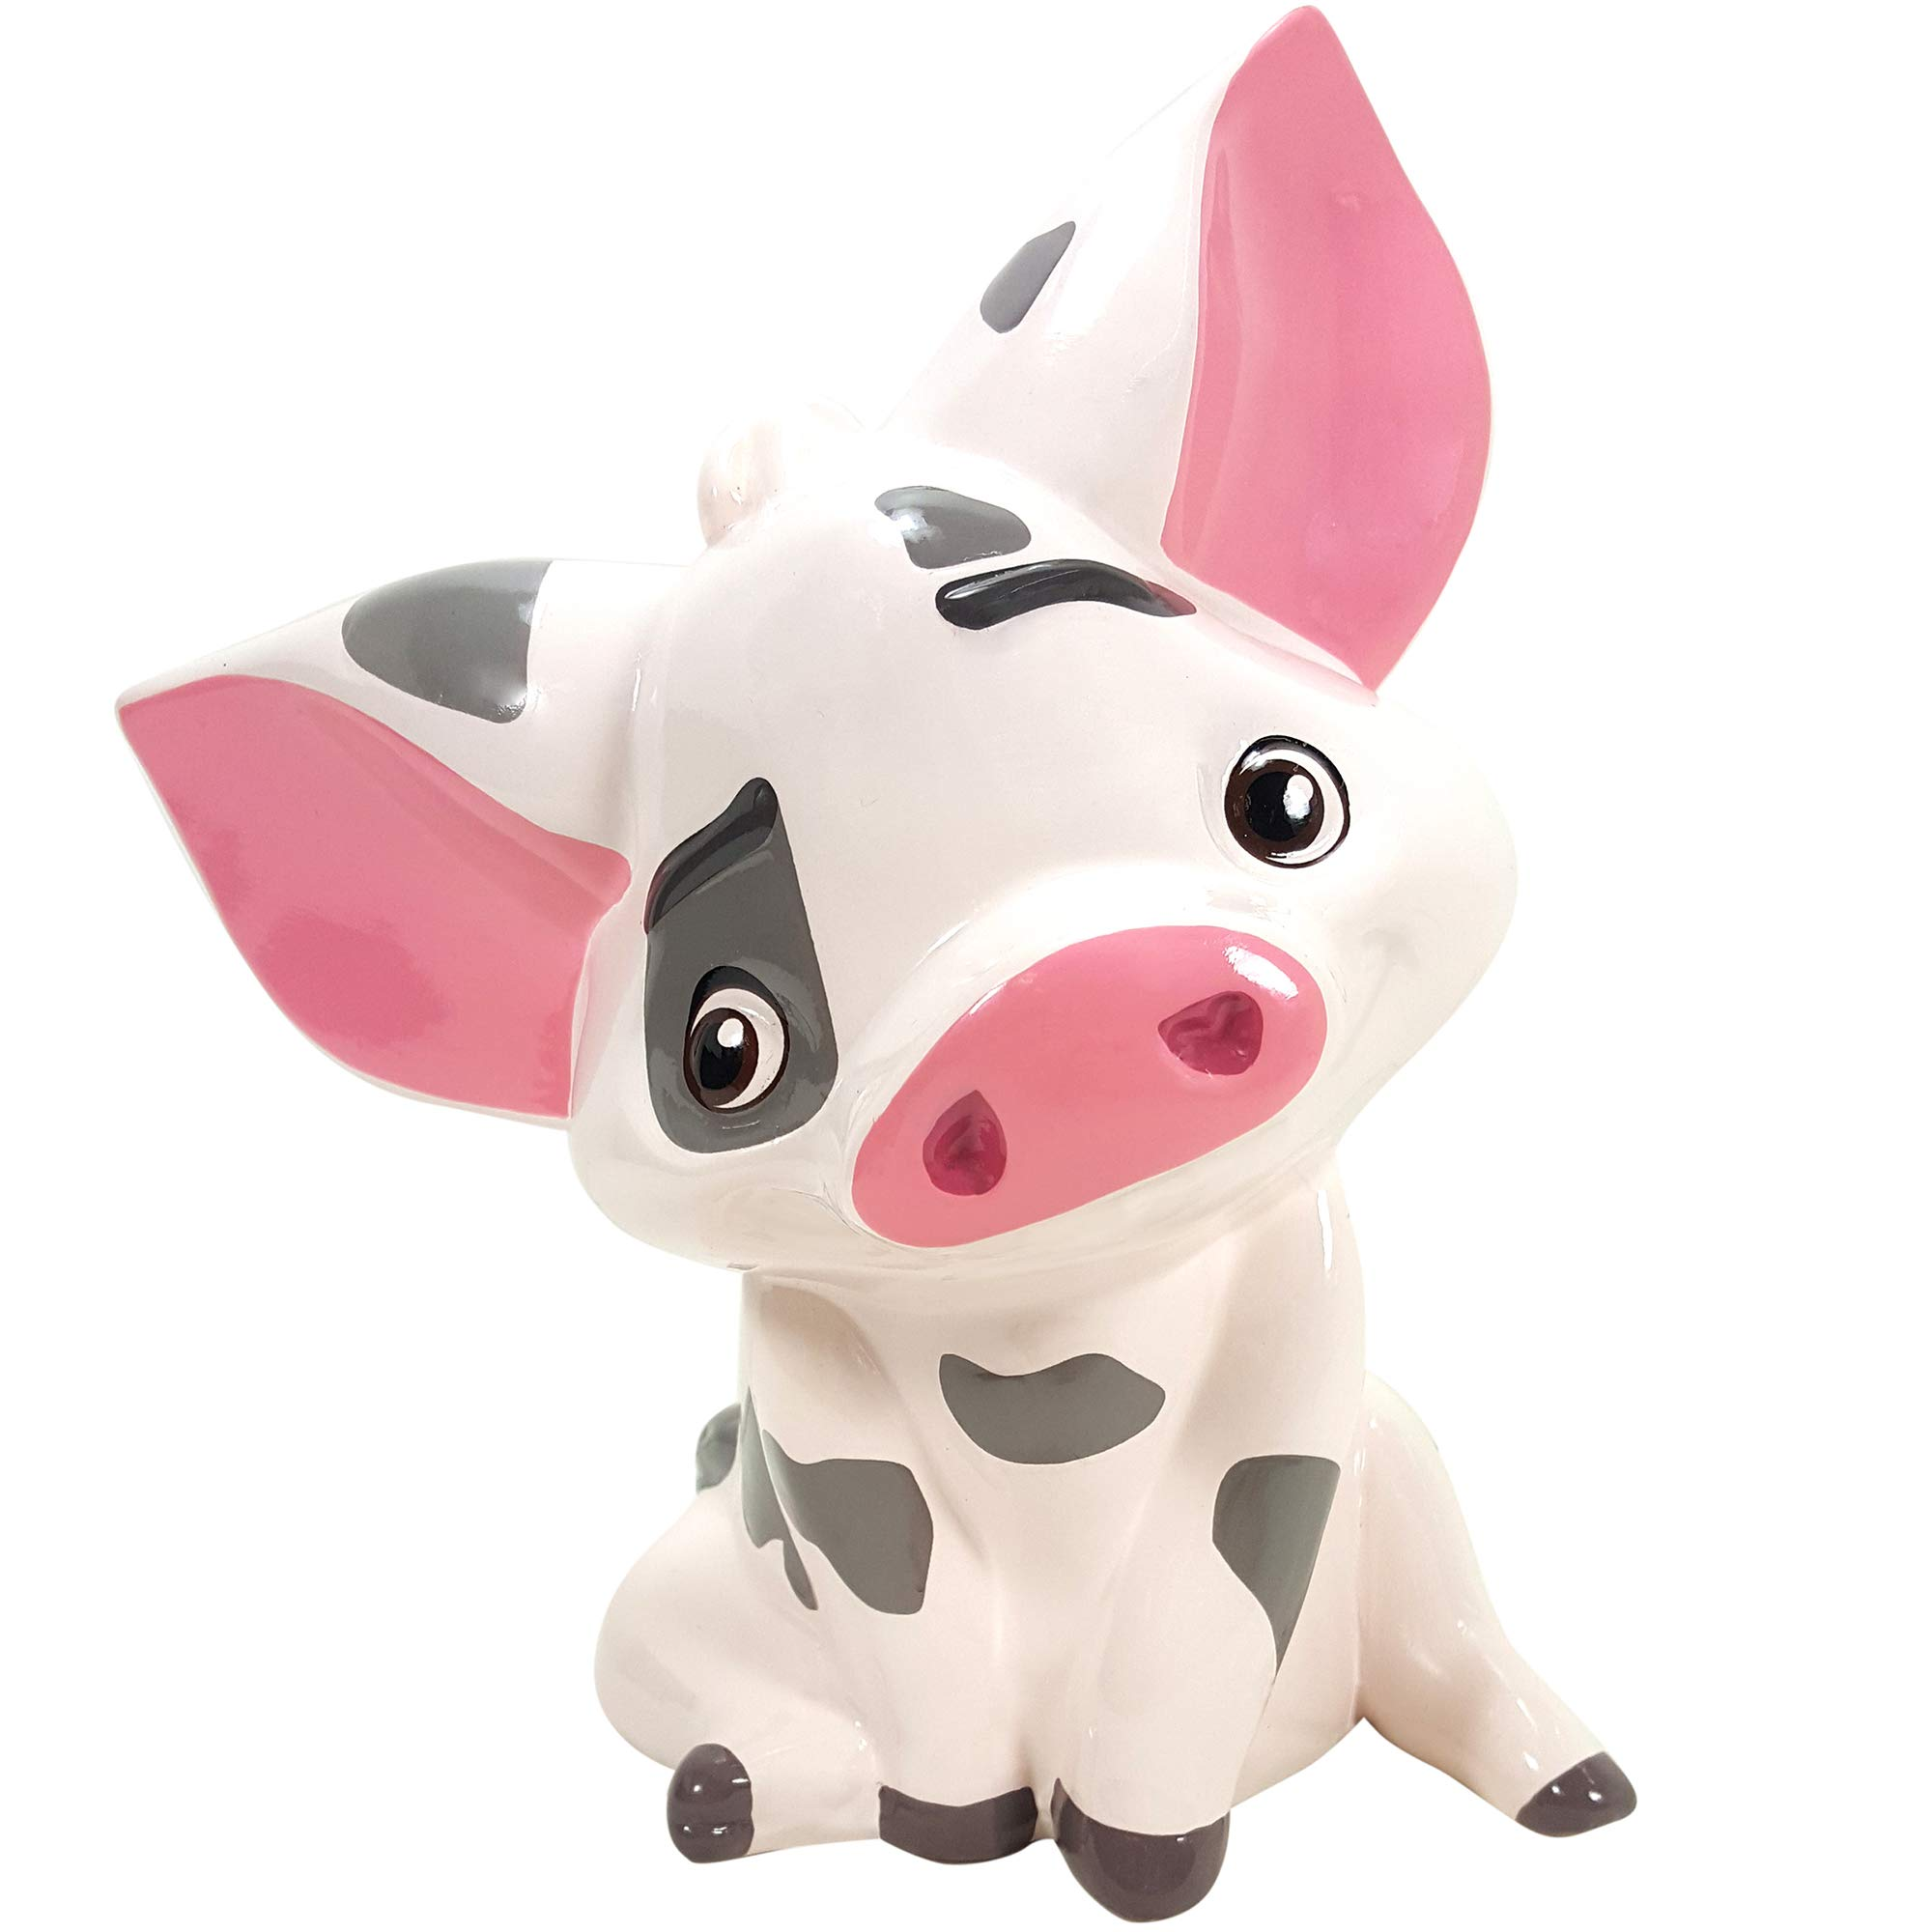 Disney Moana Pua Ceramic Piggy Bank - Collectible Gift Item for Boys, Girls, Adults, Baby, Moana Fan! by Disney